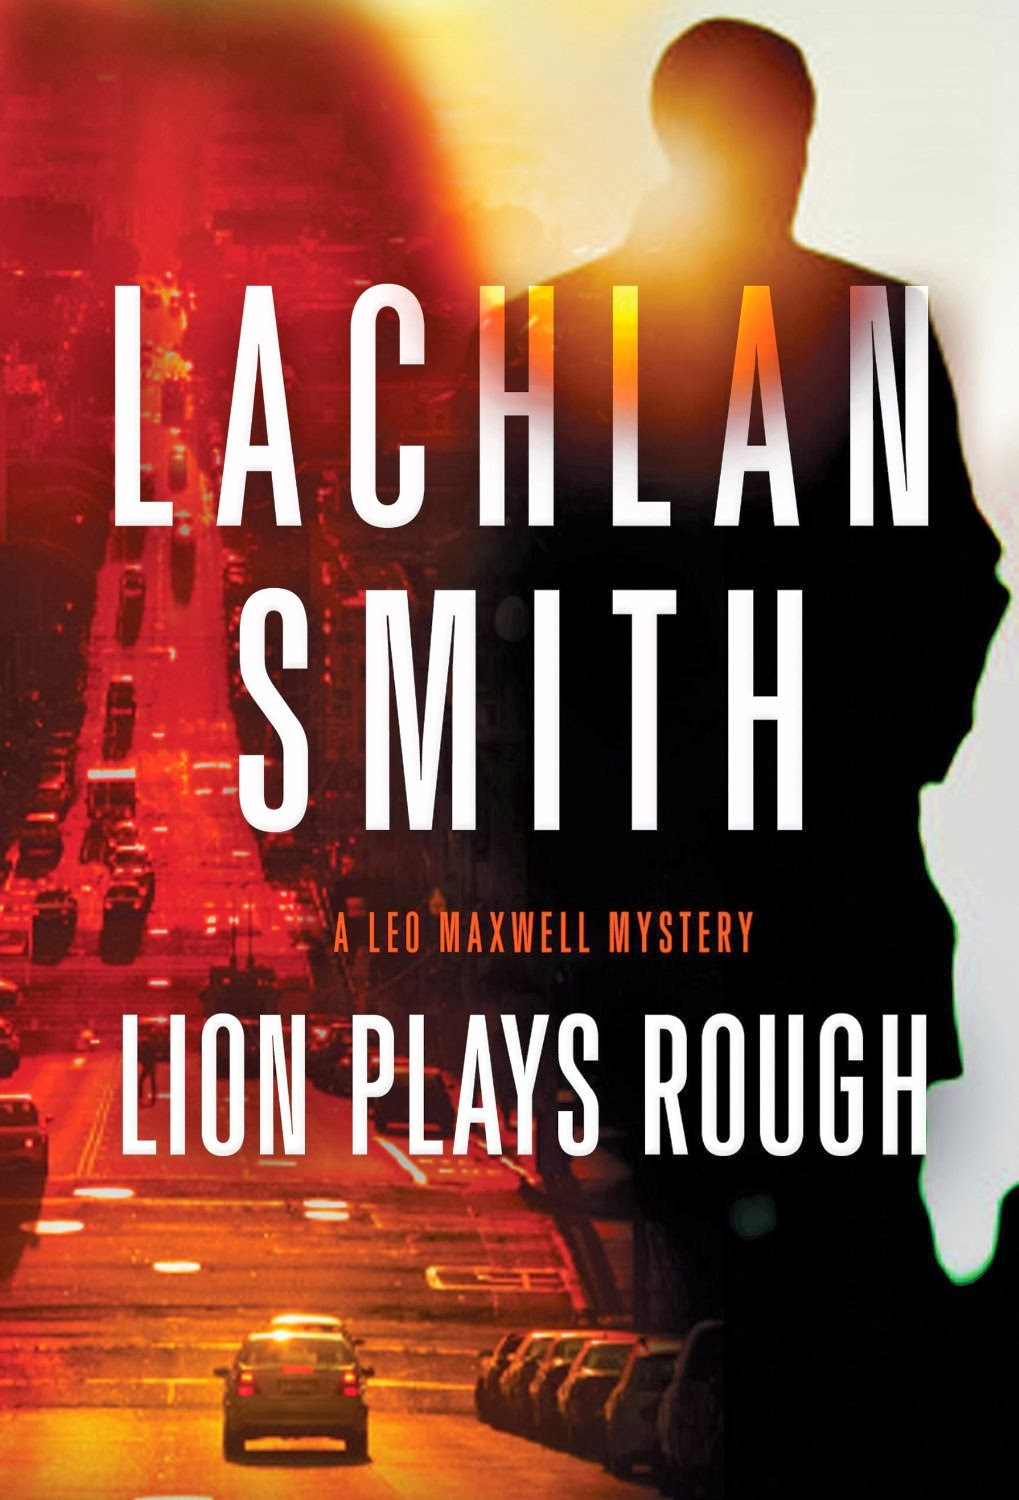 http://discover.halifaxpubliclibraries.ca/?q=title:%22lion%20plays%20rough%22